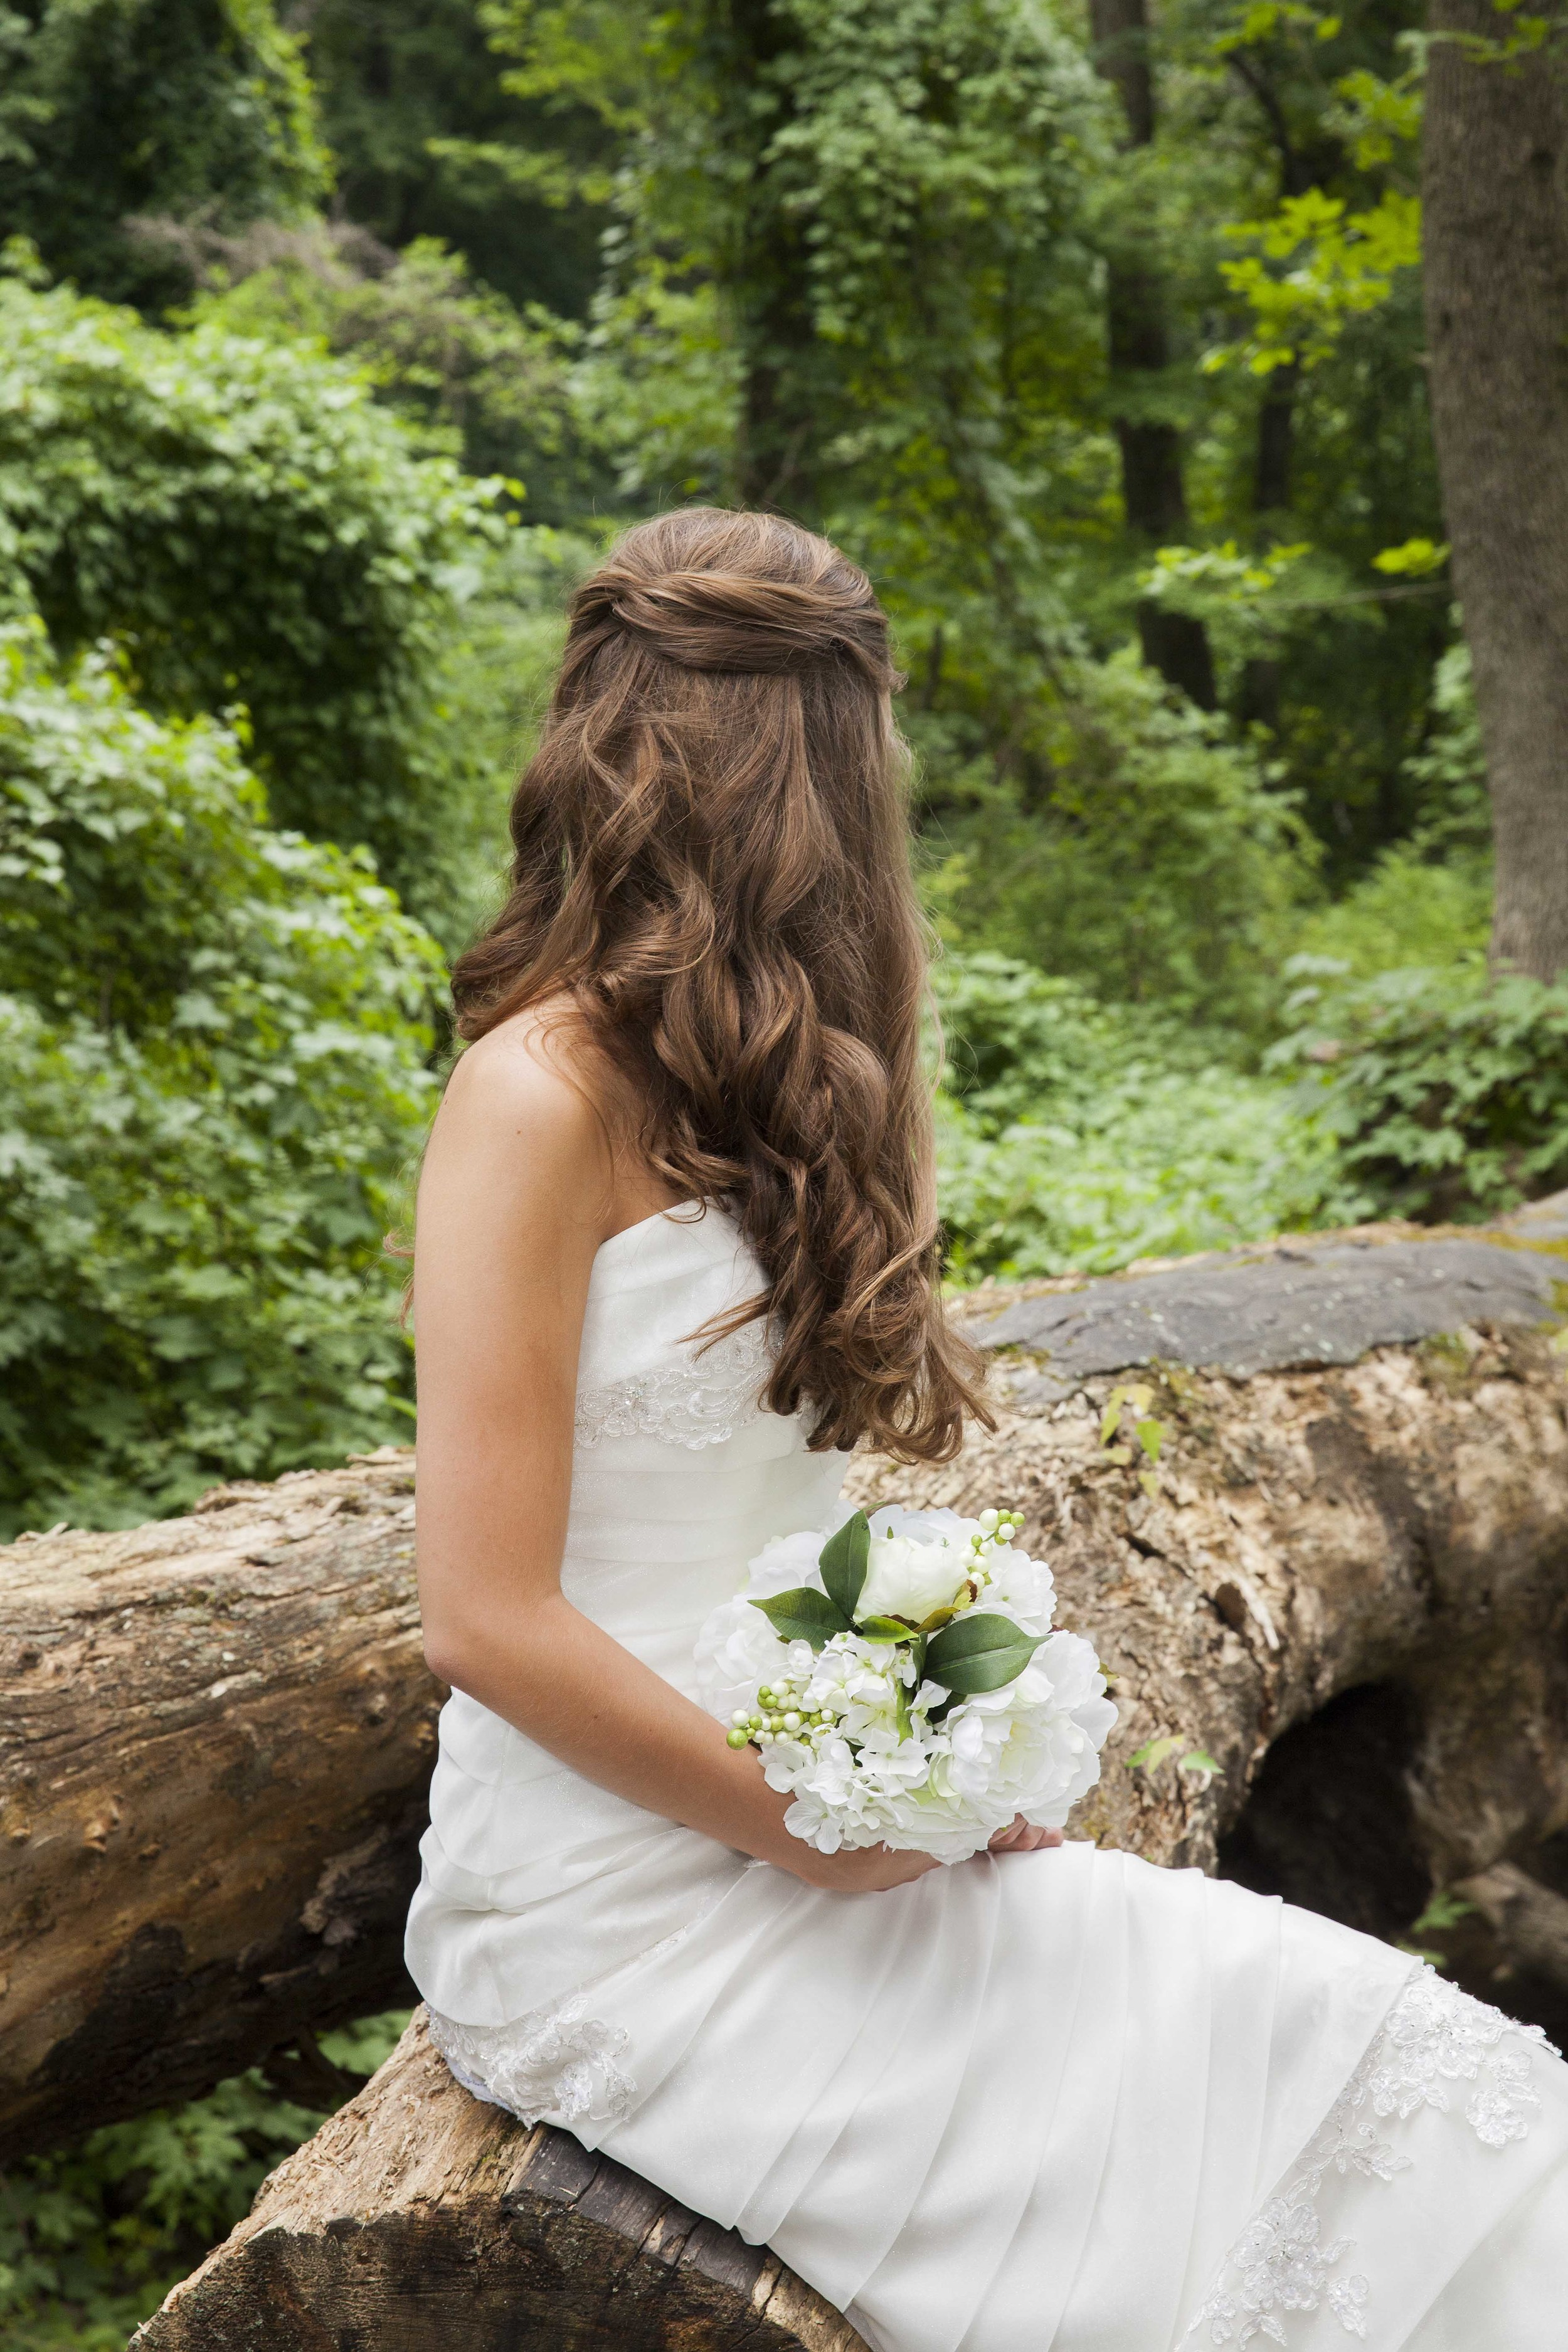 Nancy Caroline Bridal Styling - New York and Philadelphia, Hair and Makeup Artistry - http://www.nancycaroline.com